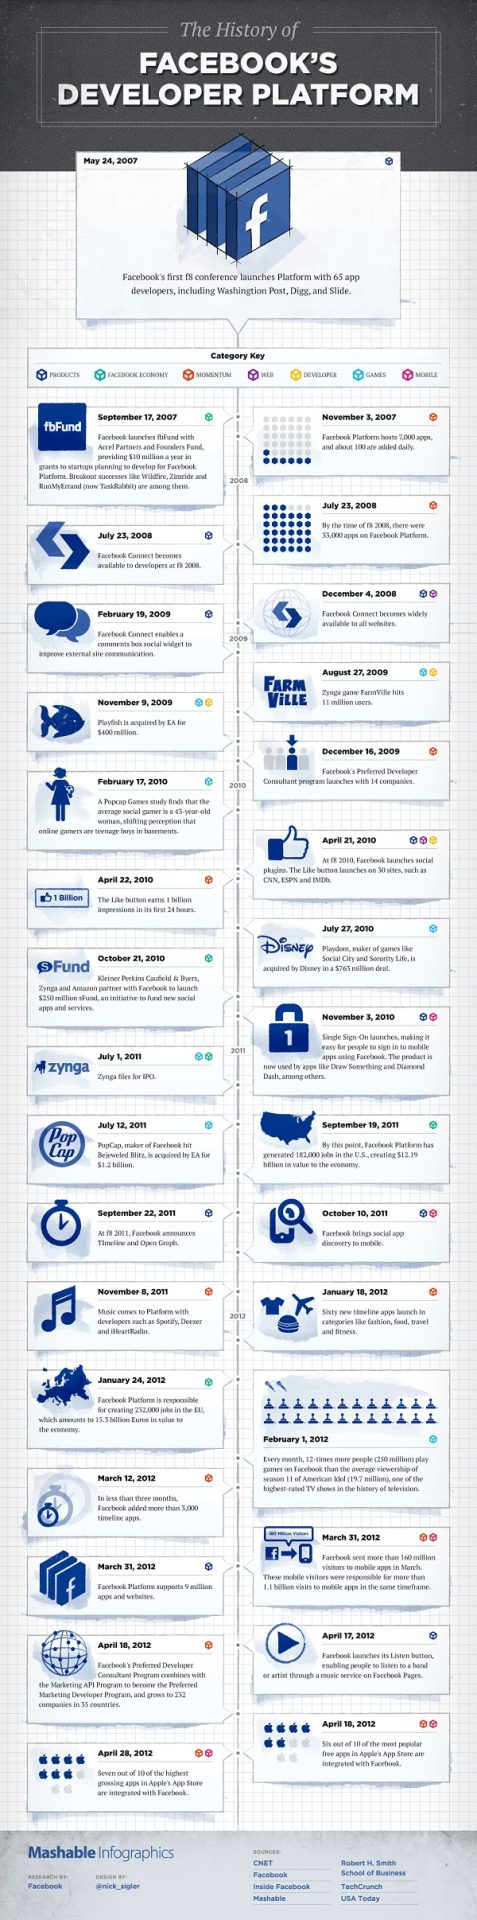 Facebook Developer Platform: A Quick Look At The History Of Social App Development [Infographic]